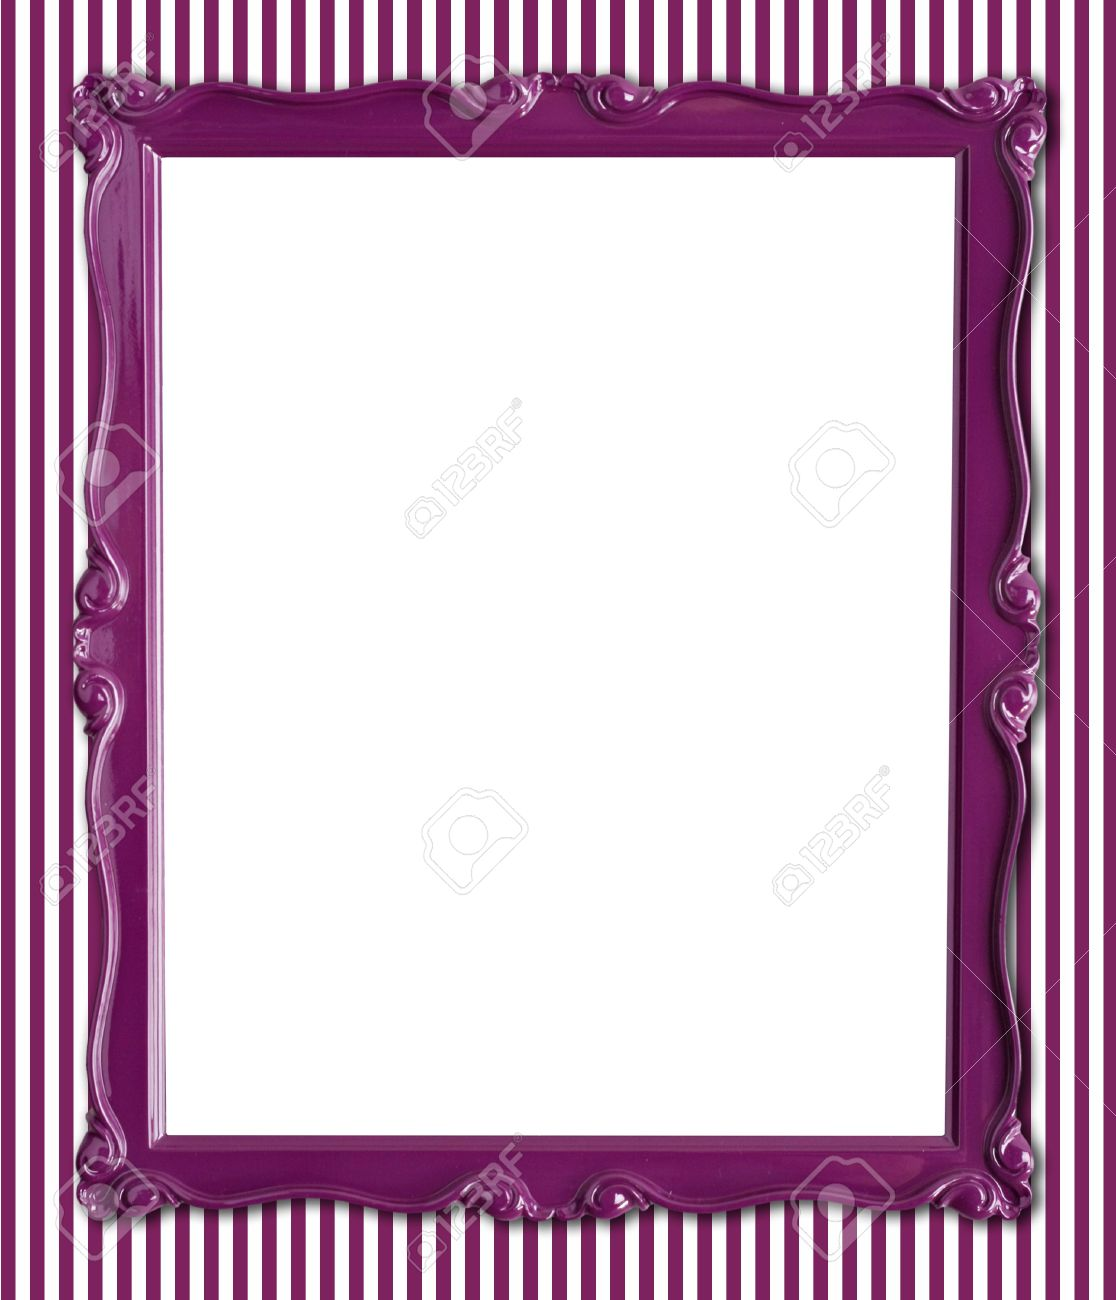 Pretty Purple Picture Frame On A Striped Wallpaper Background. Stock ...